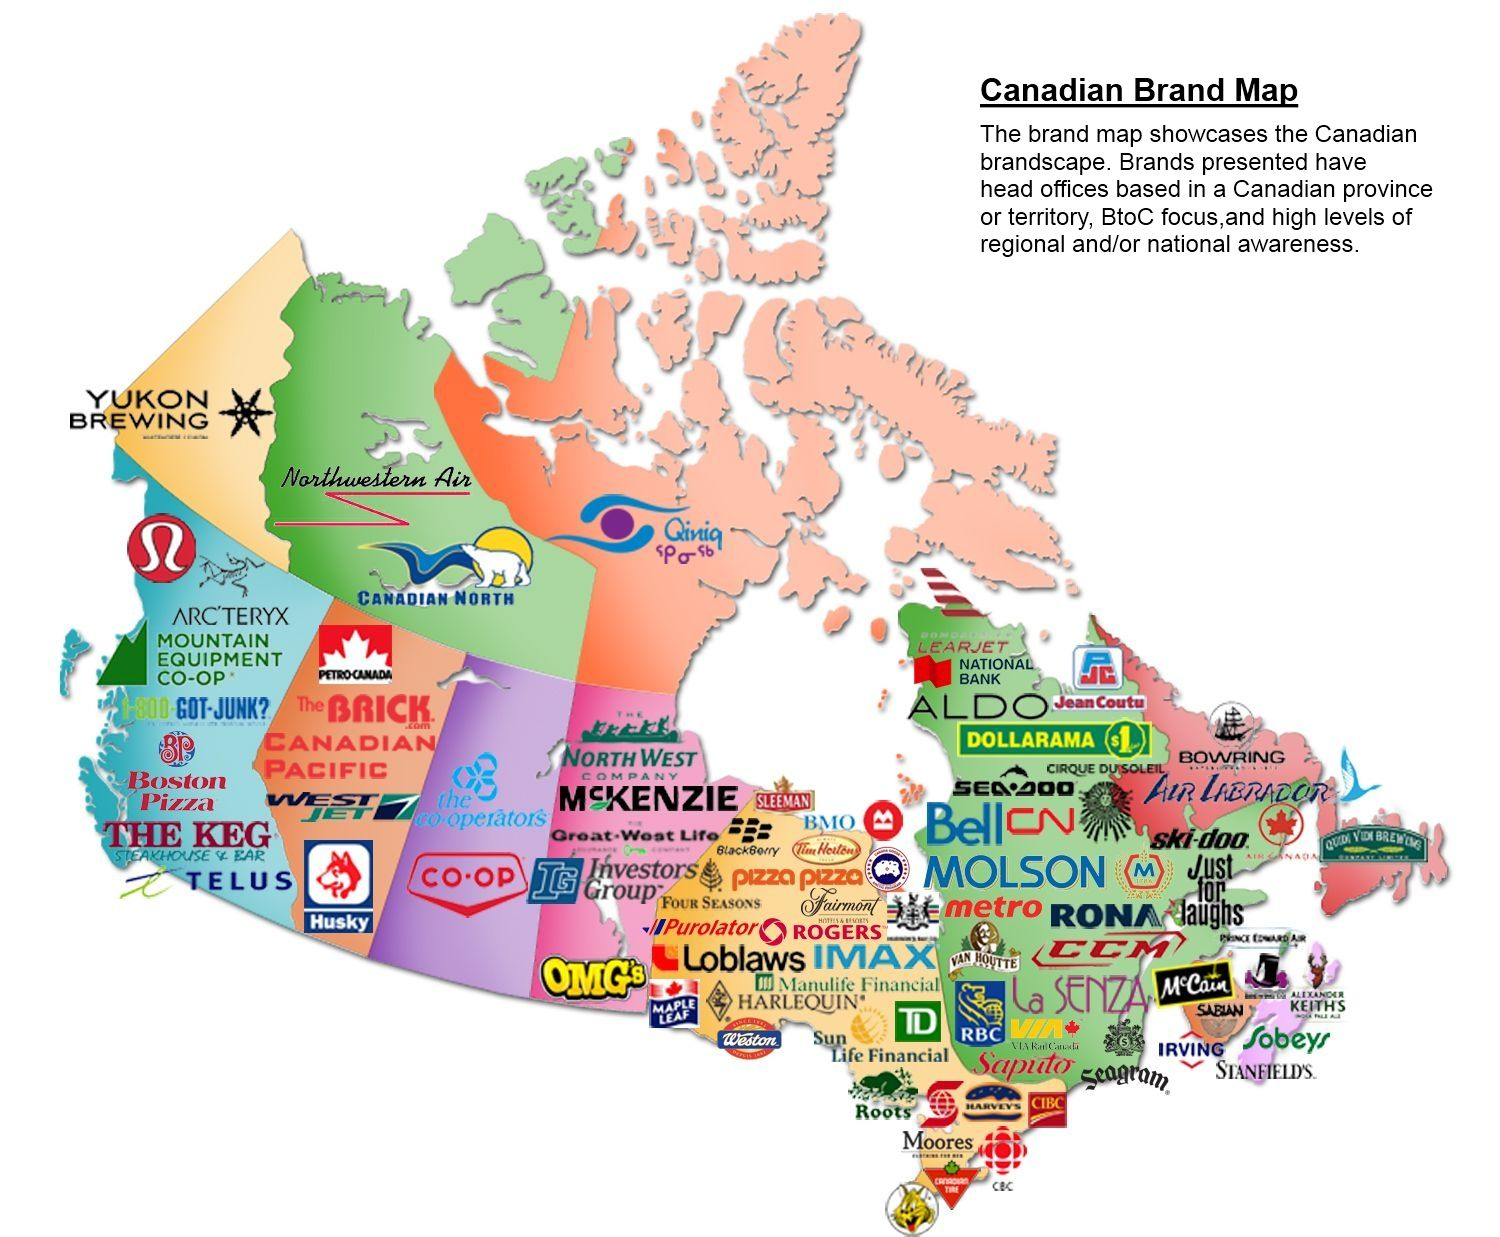 Image Gallery of Canadian Stereotypes Map